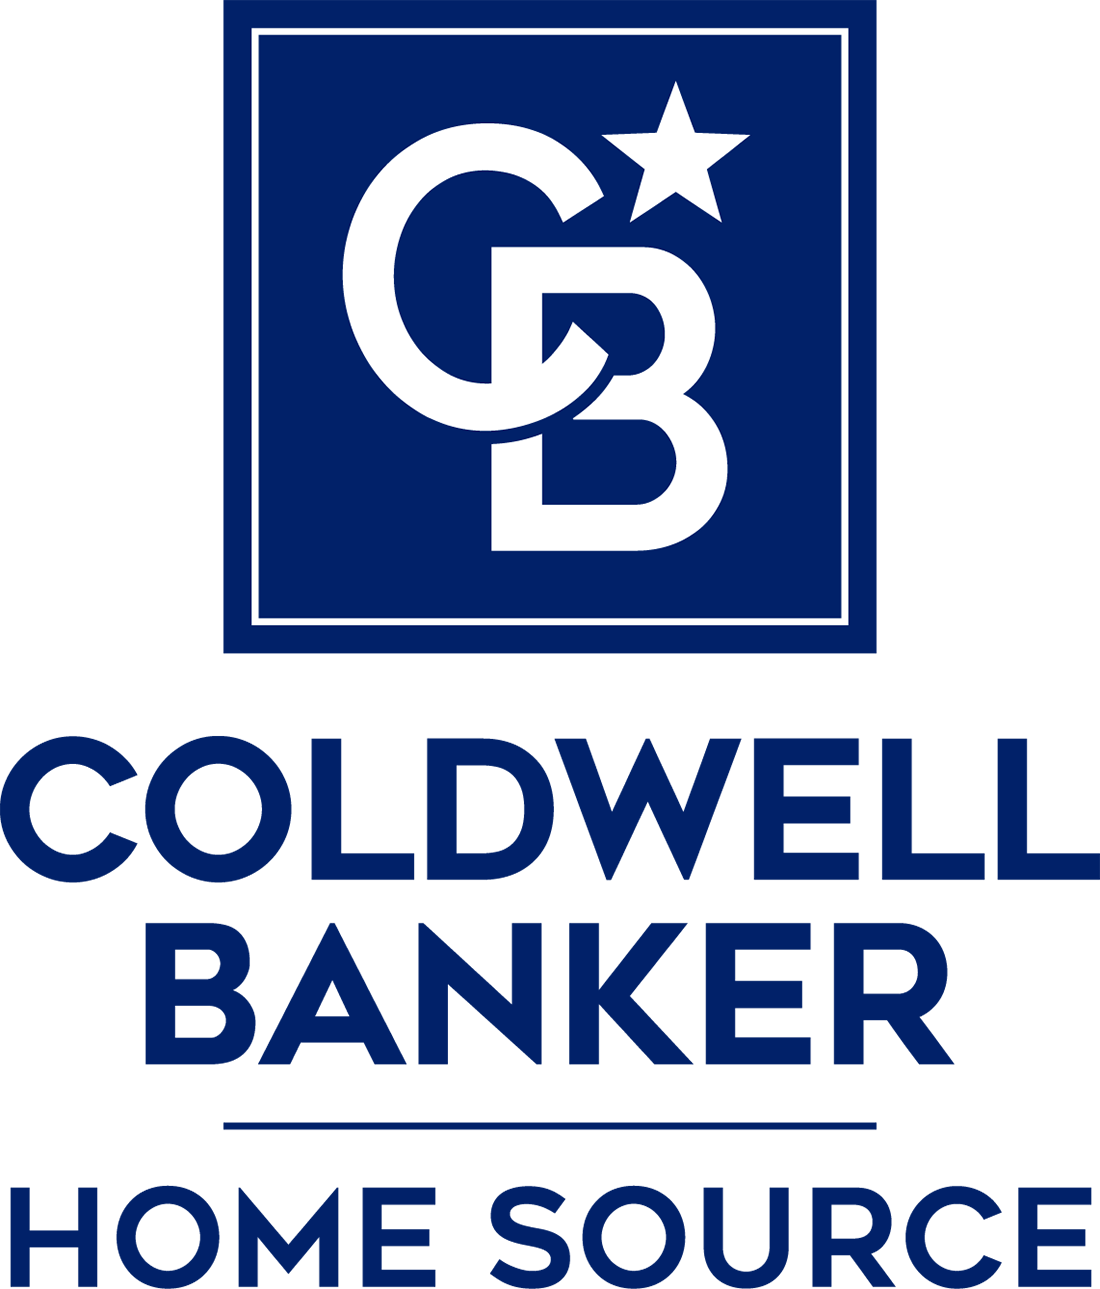 Kristin Rege - Coldwell Banker Home Source Logo